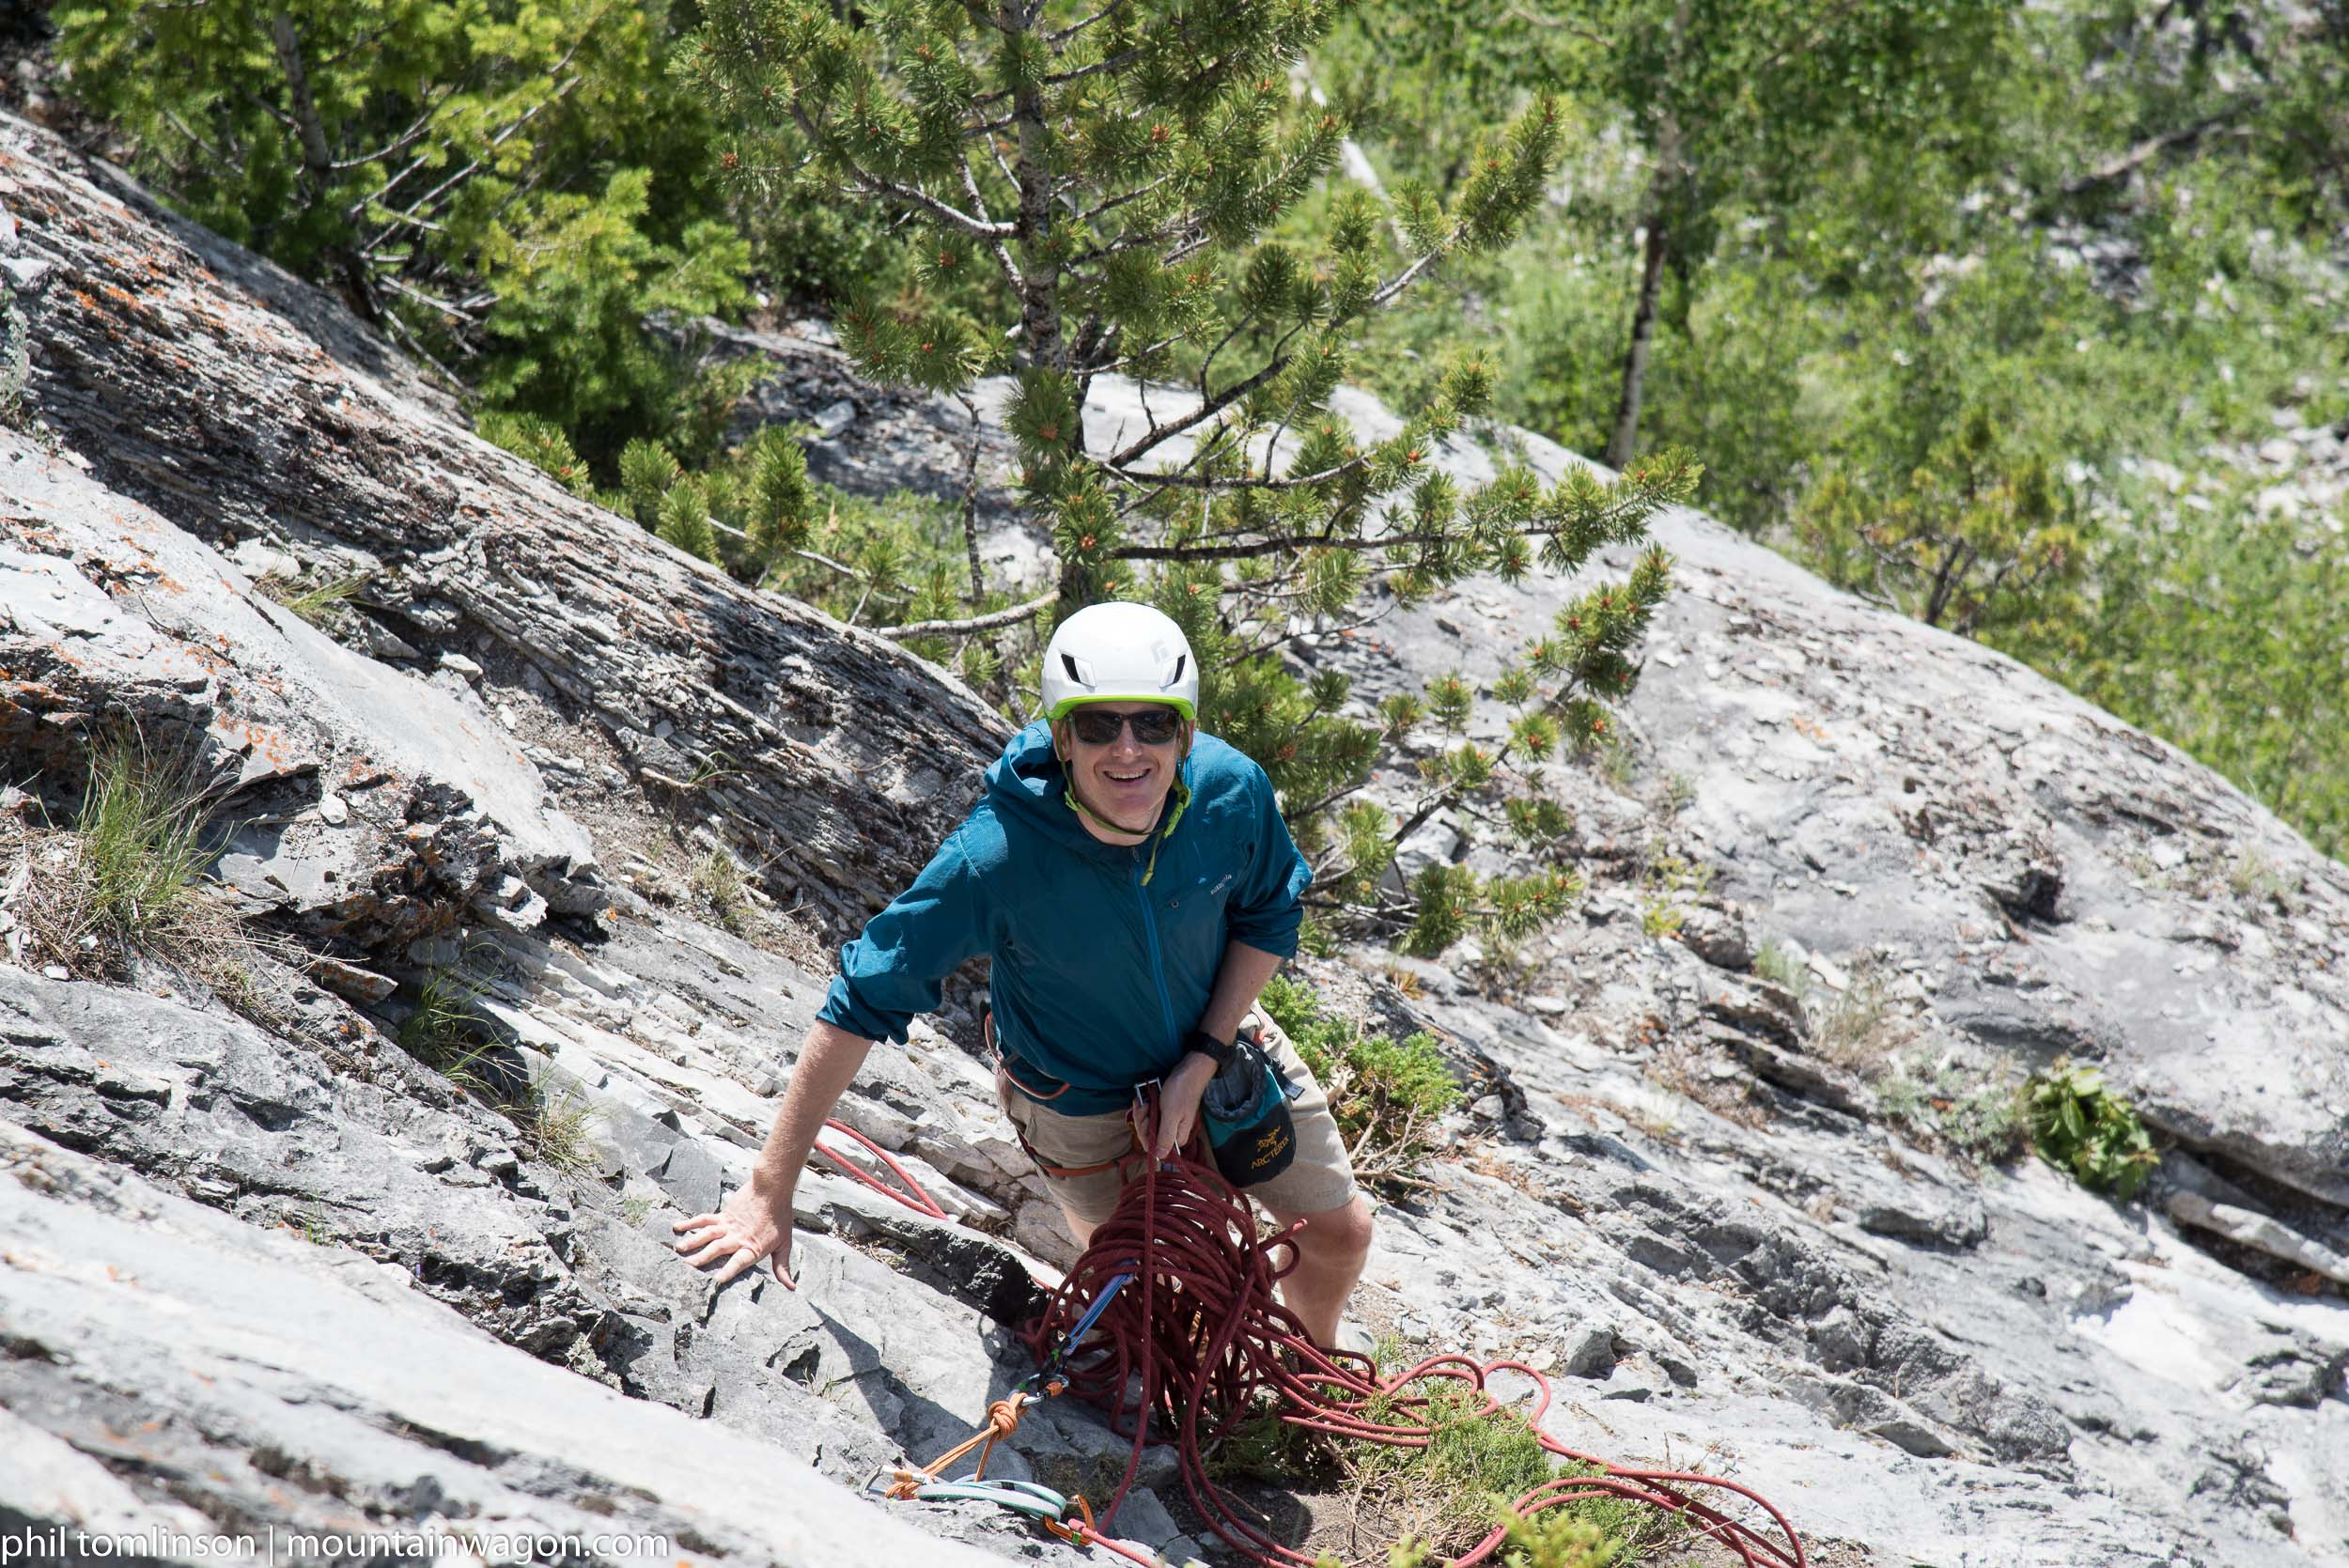 Cyril, happy, but less than comfortable at his belay stance